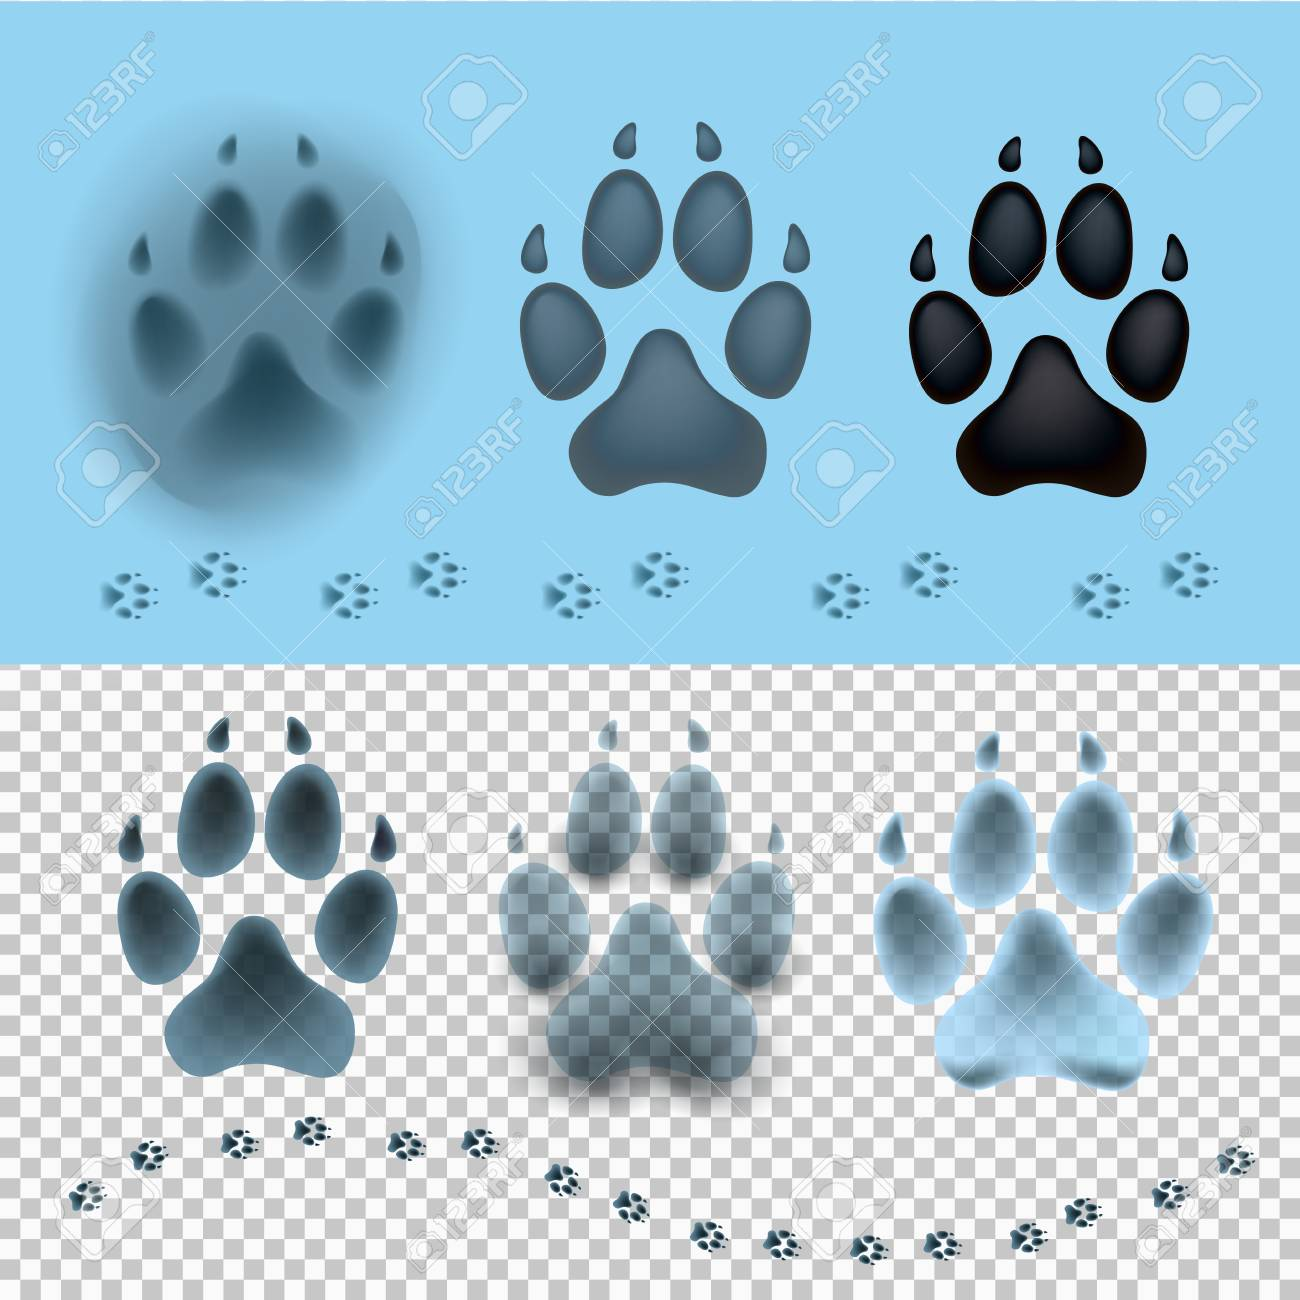 Dog Set Paw Print Flat Icon For Animal Apps And Websites. Footprint ...